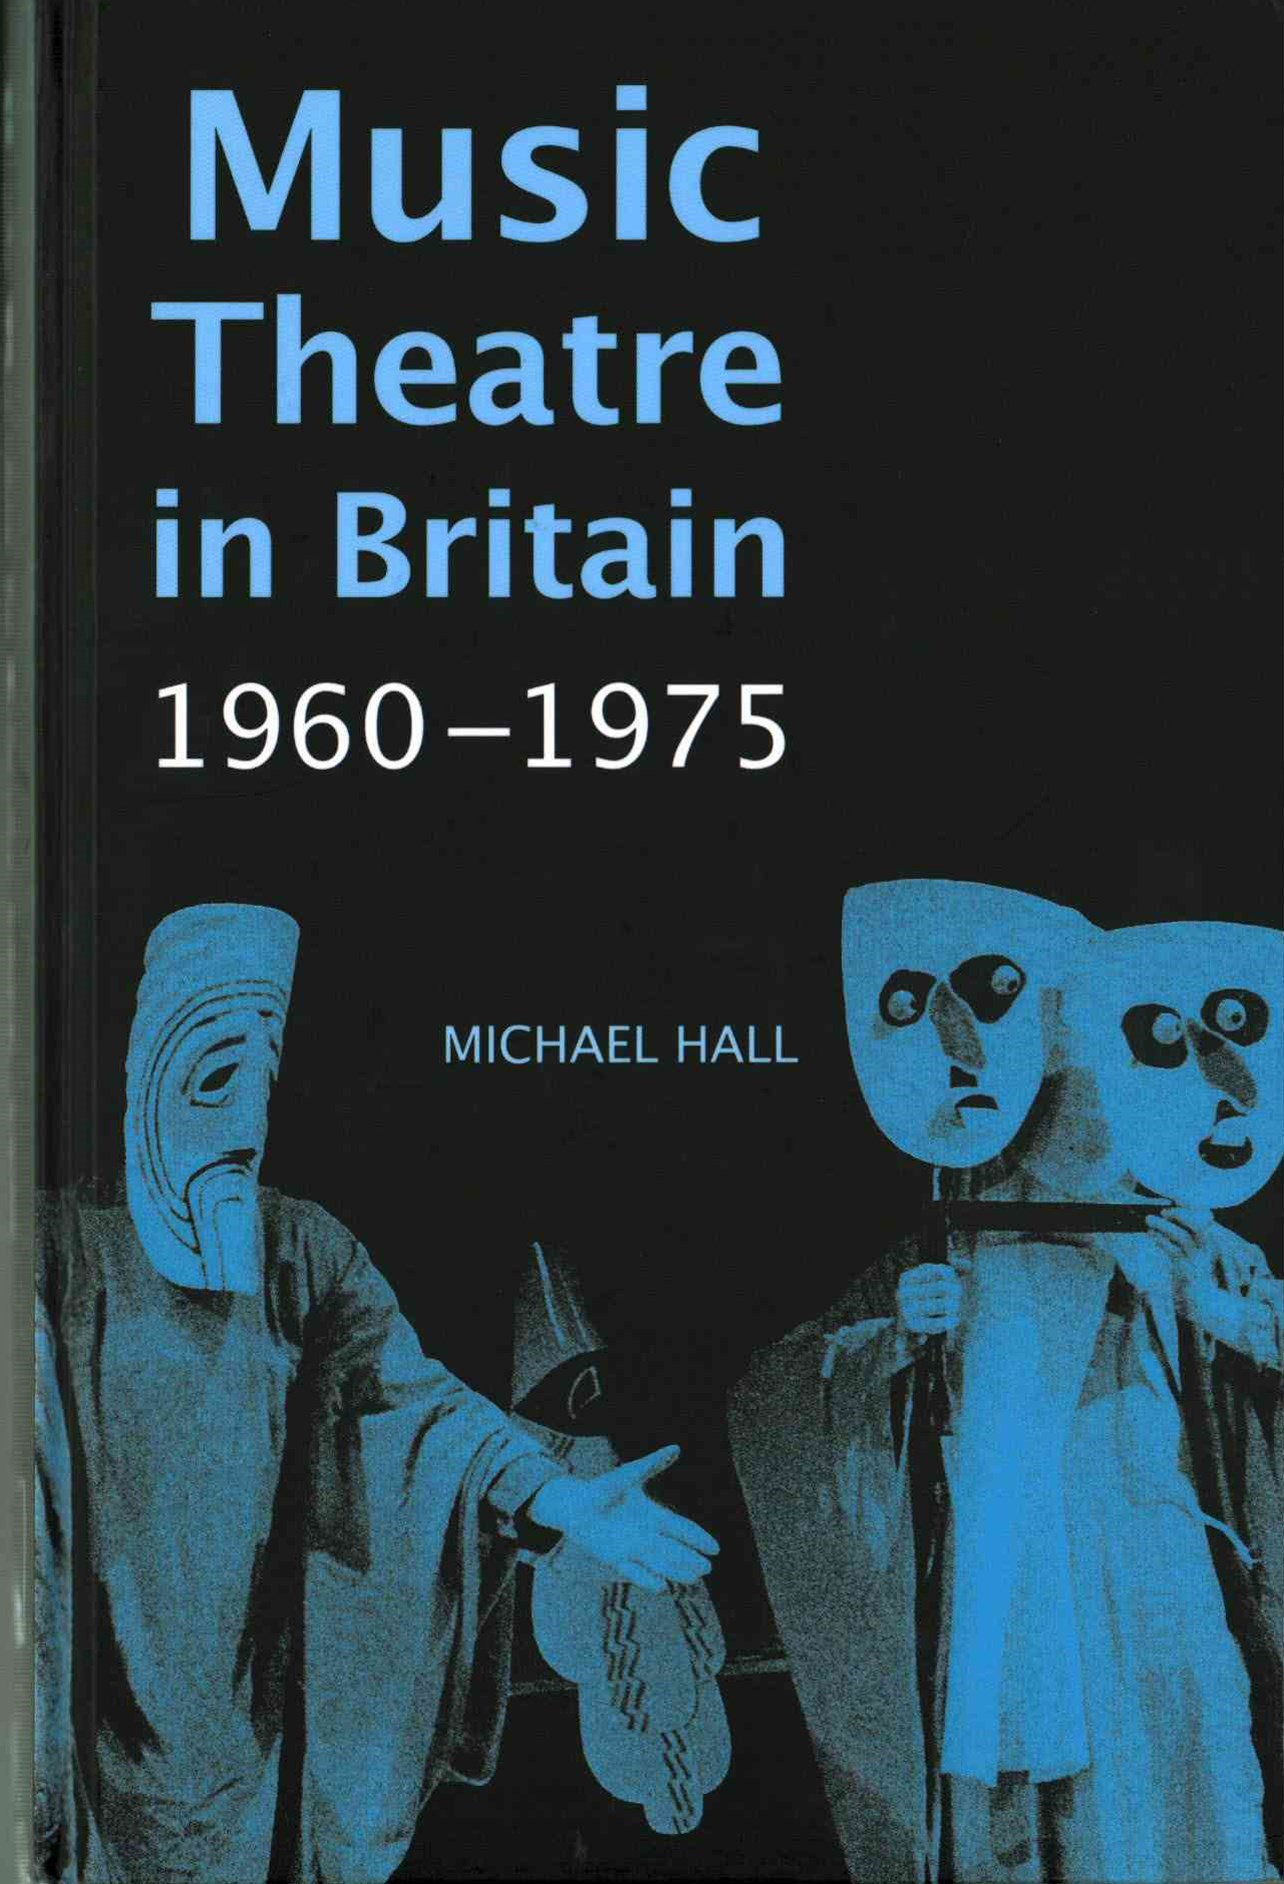 Music Theatre in Britain, 1960-1975